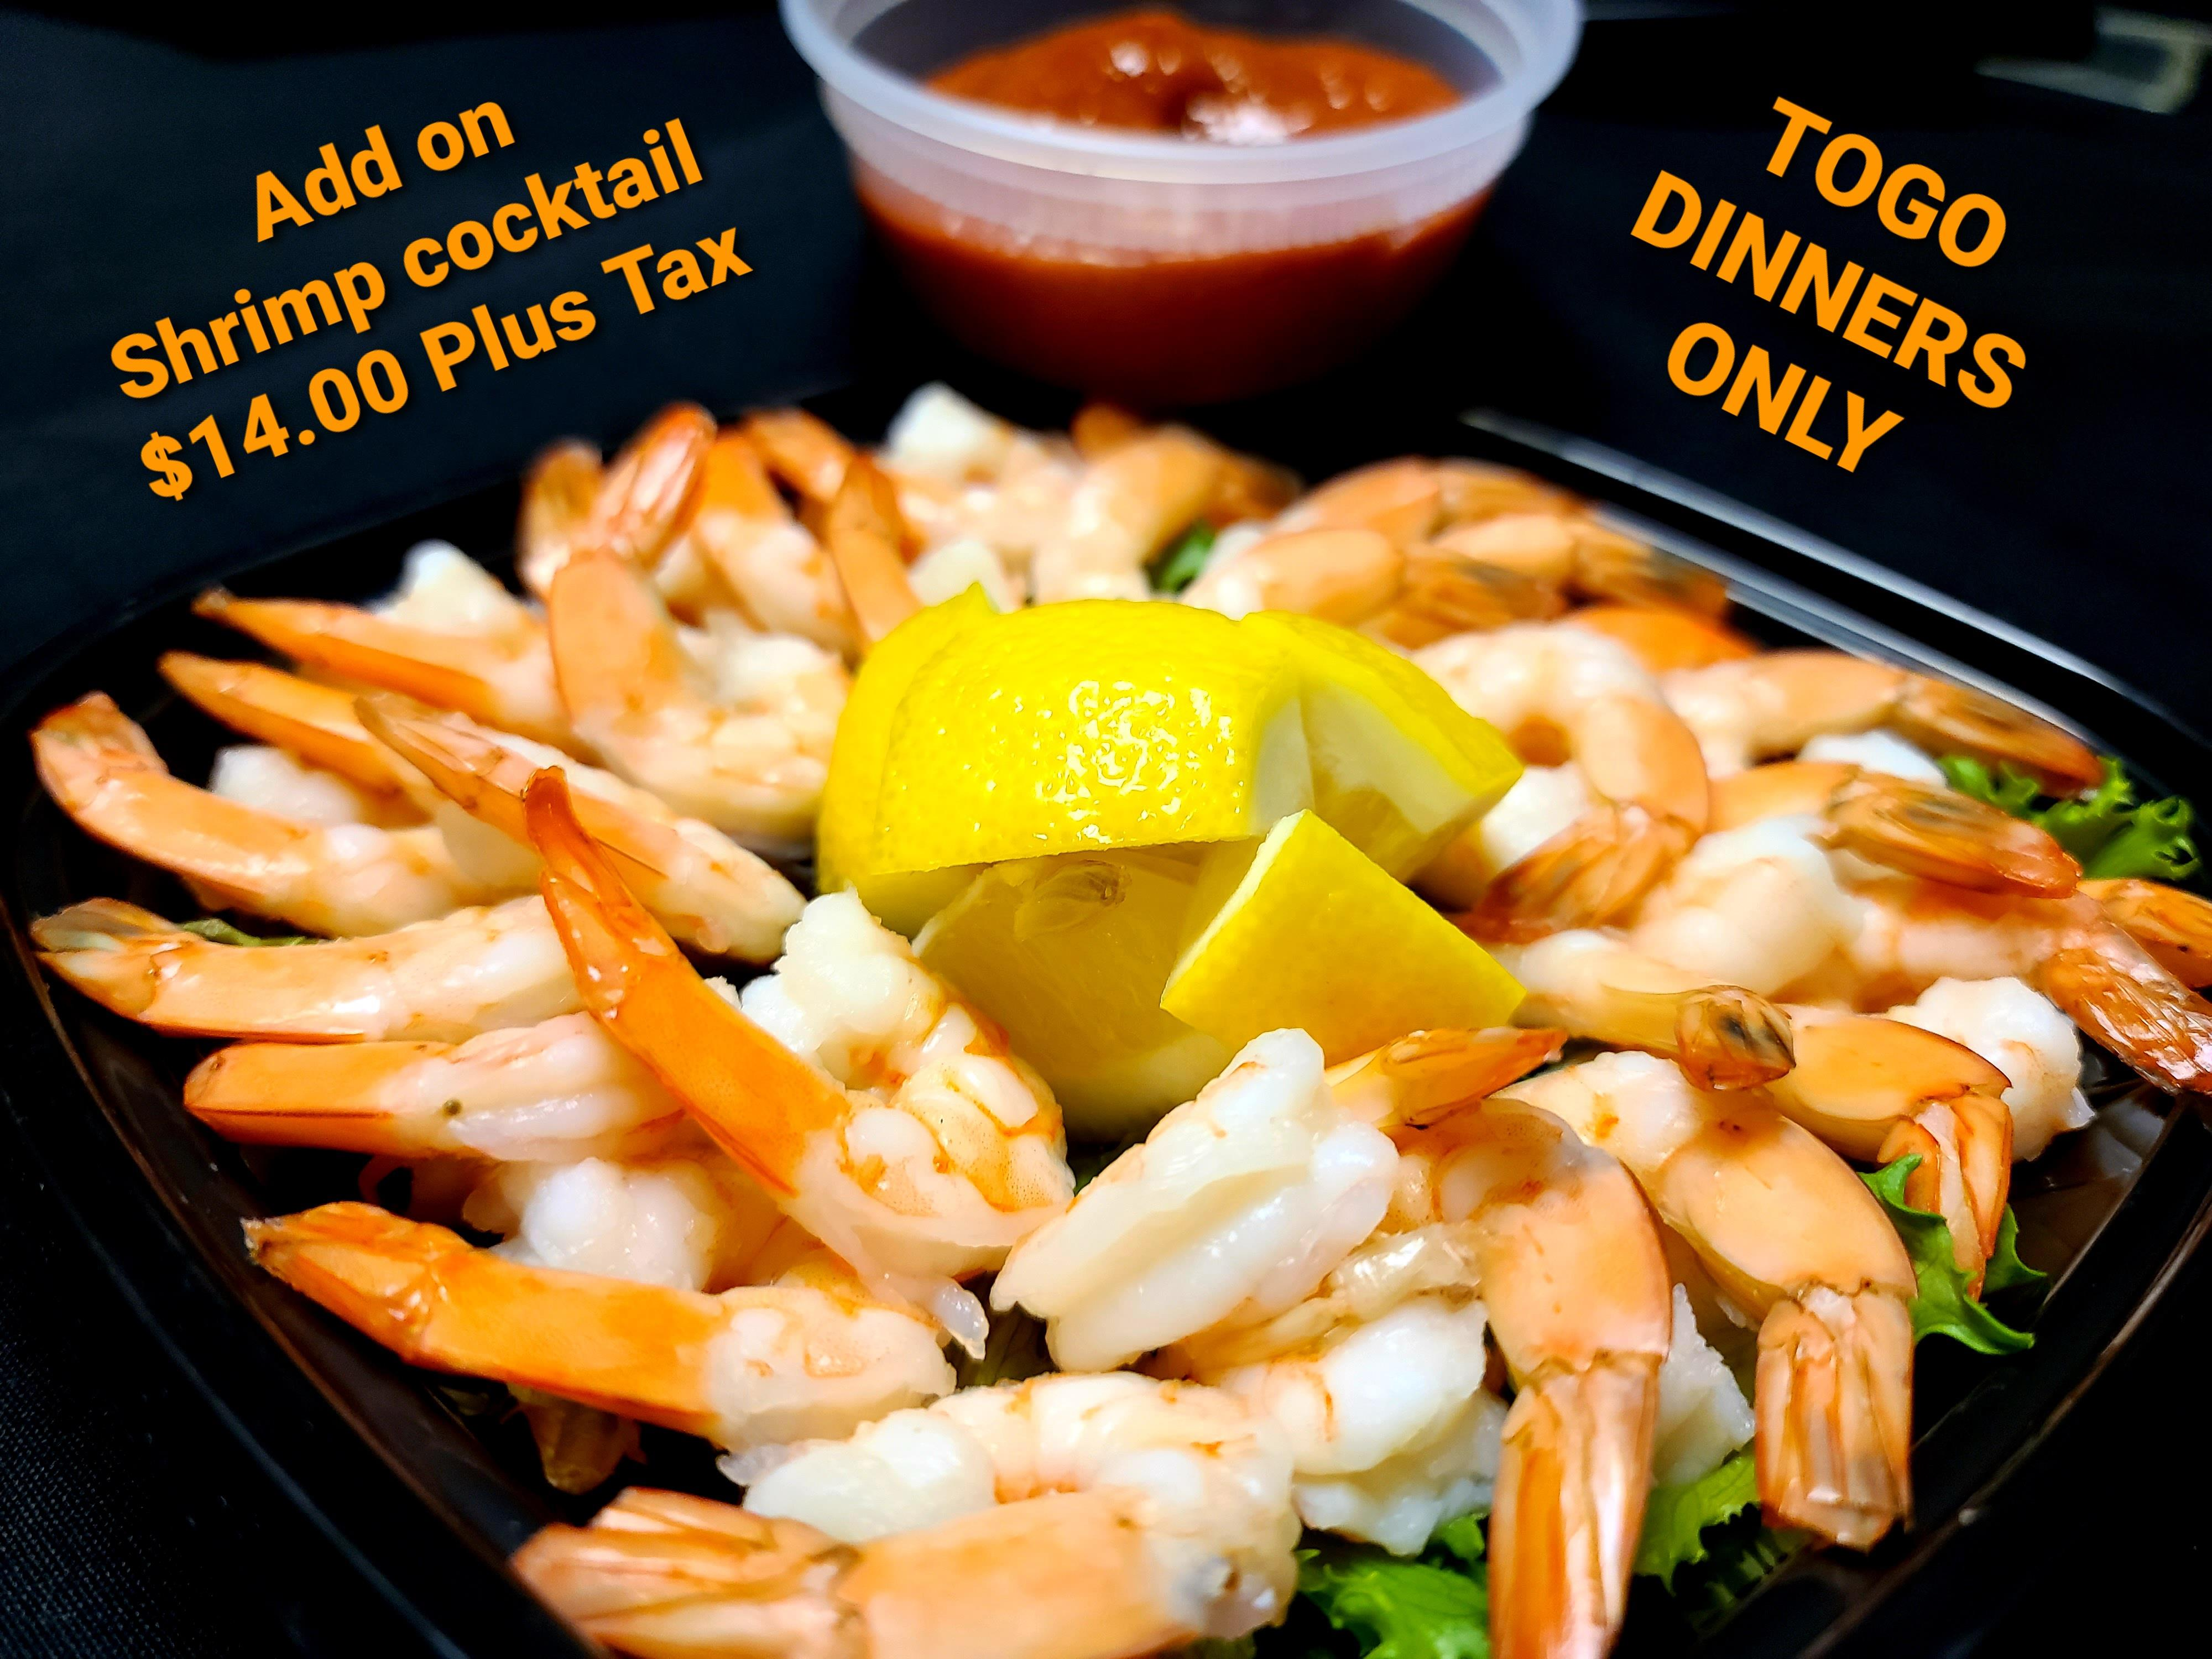 add on shrimp cocktail $14.00 plus tax- to go dinners only